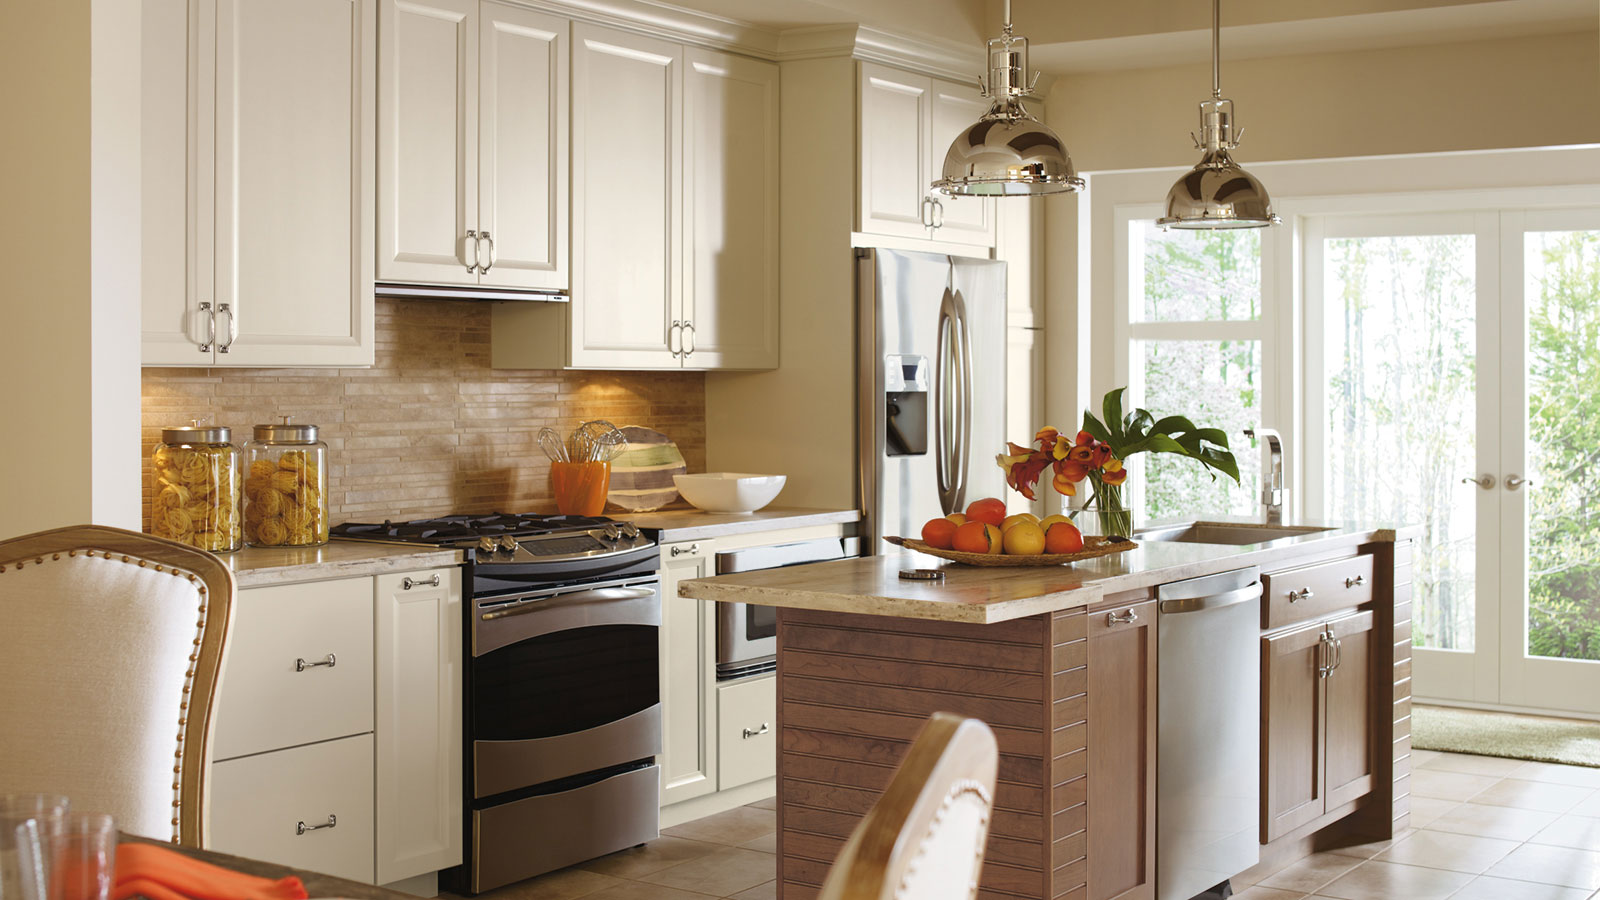 Painted Maple Cabinets in a Casual Kitchen - Omega on Maple Cabinets Kitchen  id=90847